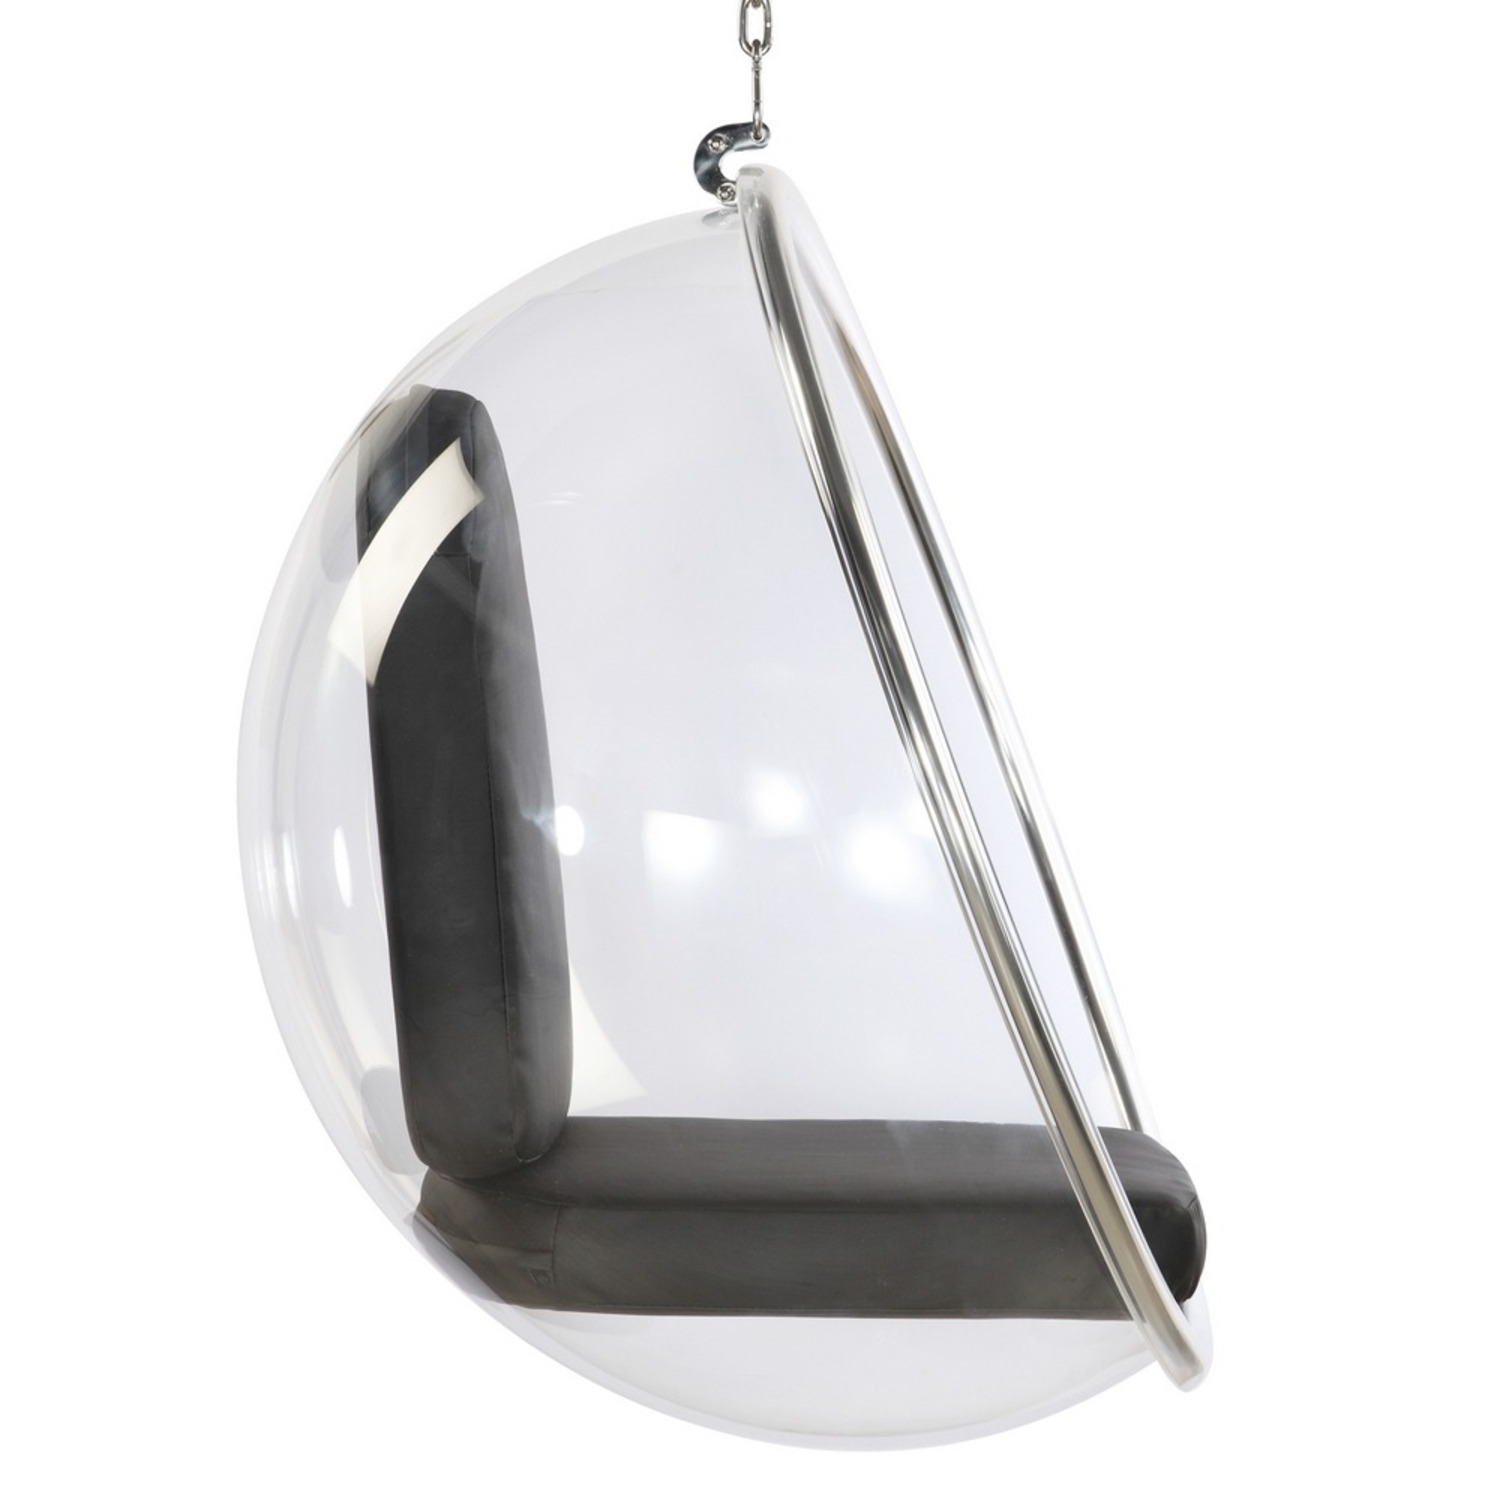 Hanging Chair In Clear Acrylic & Black PU Leather - image-1